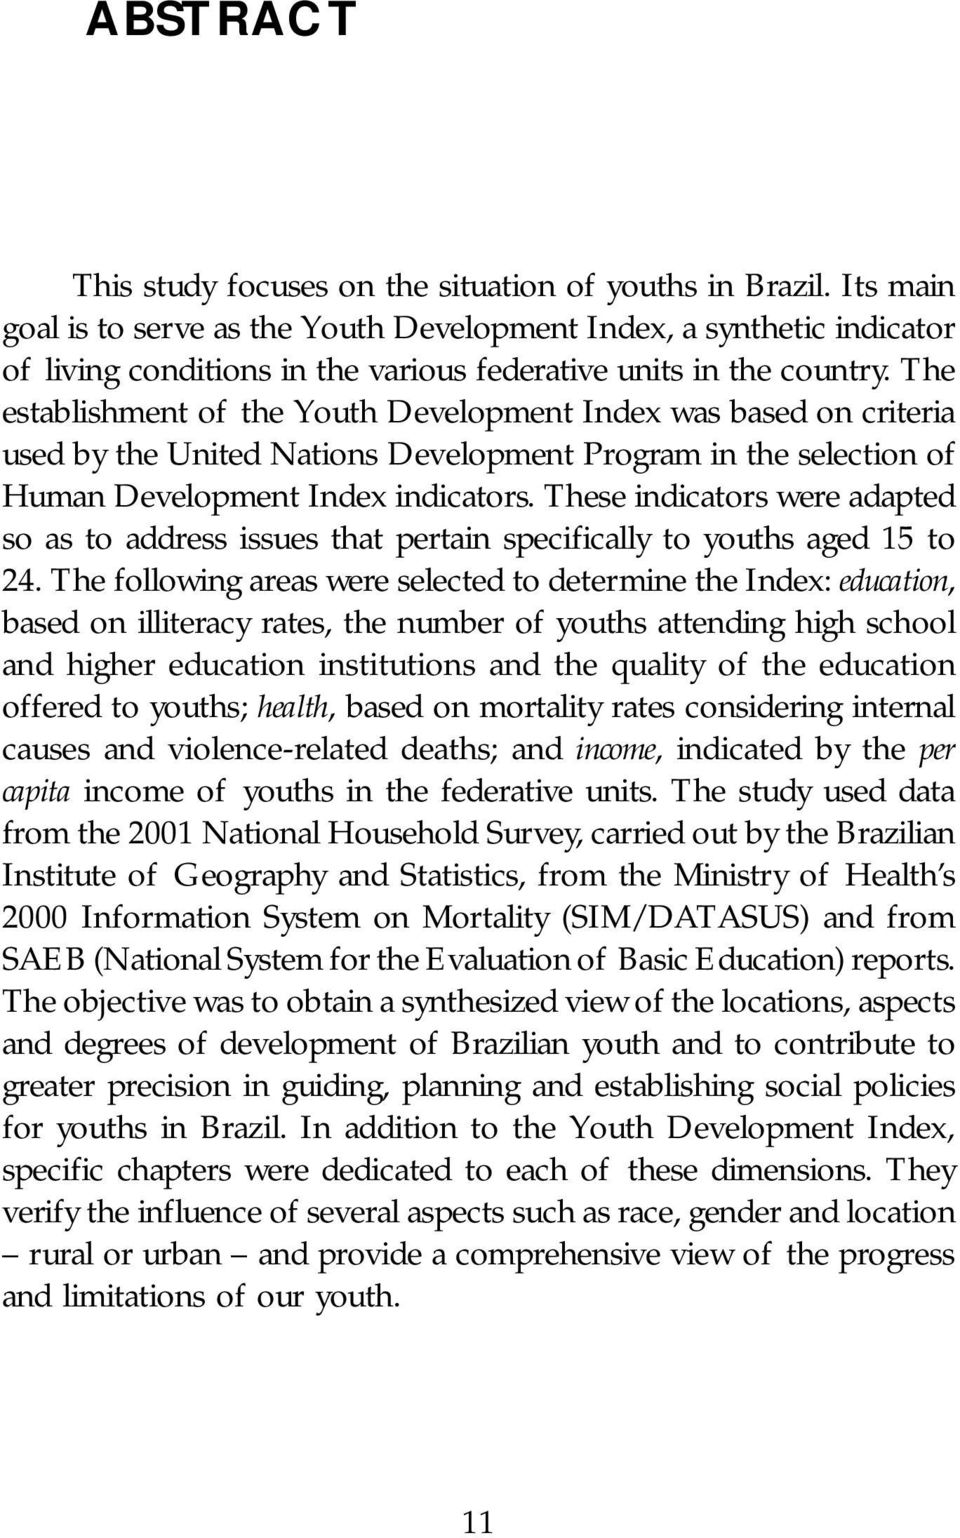 The establishment of the Youth Development Index was based on criteria used by the United Nations Development Program in the selection of Human Development Index indicators.